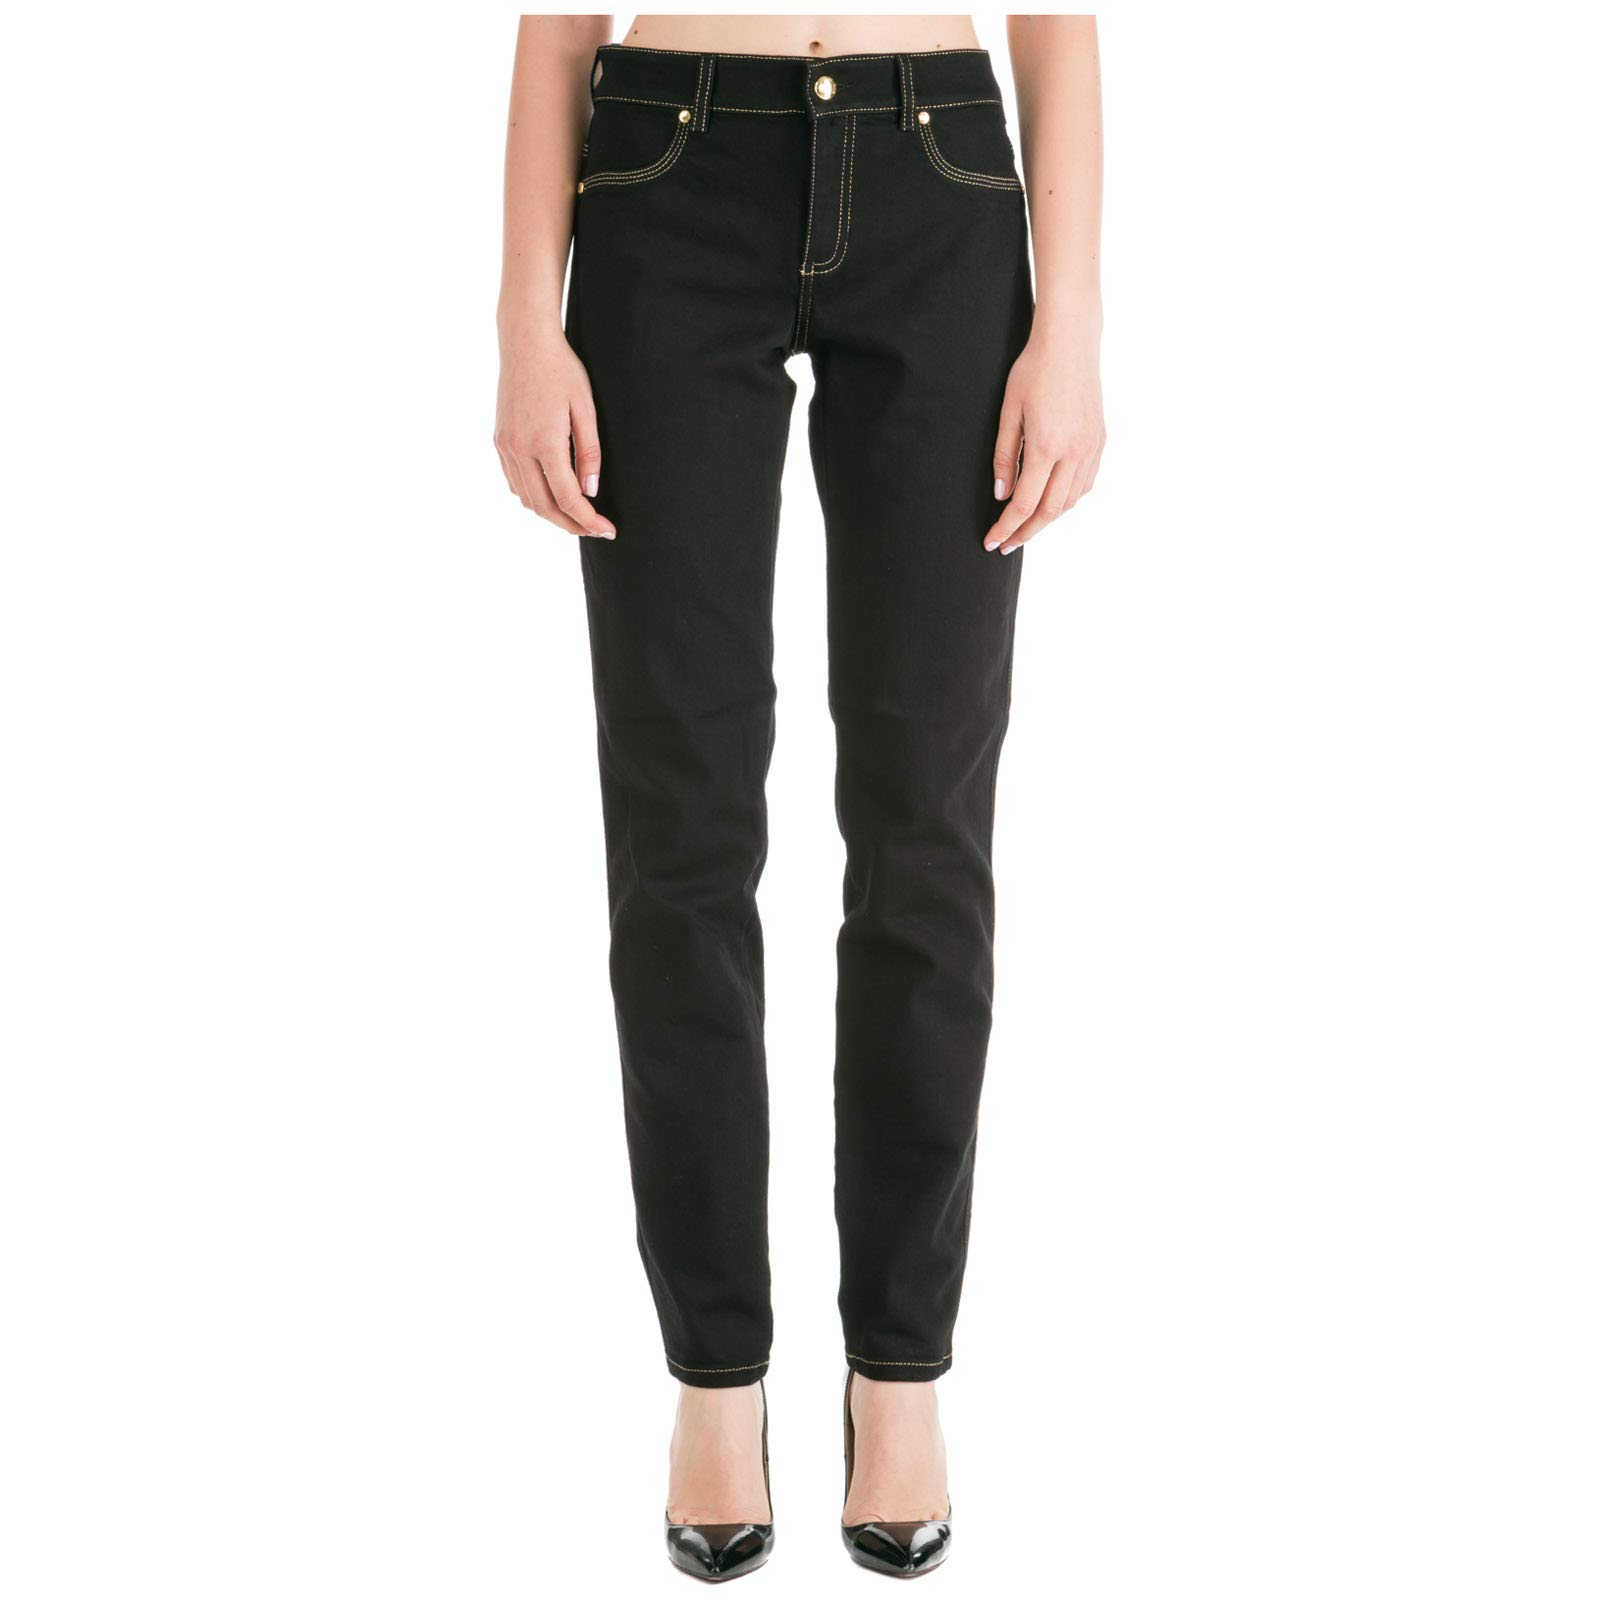 Jean 89940taille Versace Jeans Trouser Couture SkinnyNoirnero Fabricant29Femme Lady srdQBhxtC